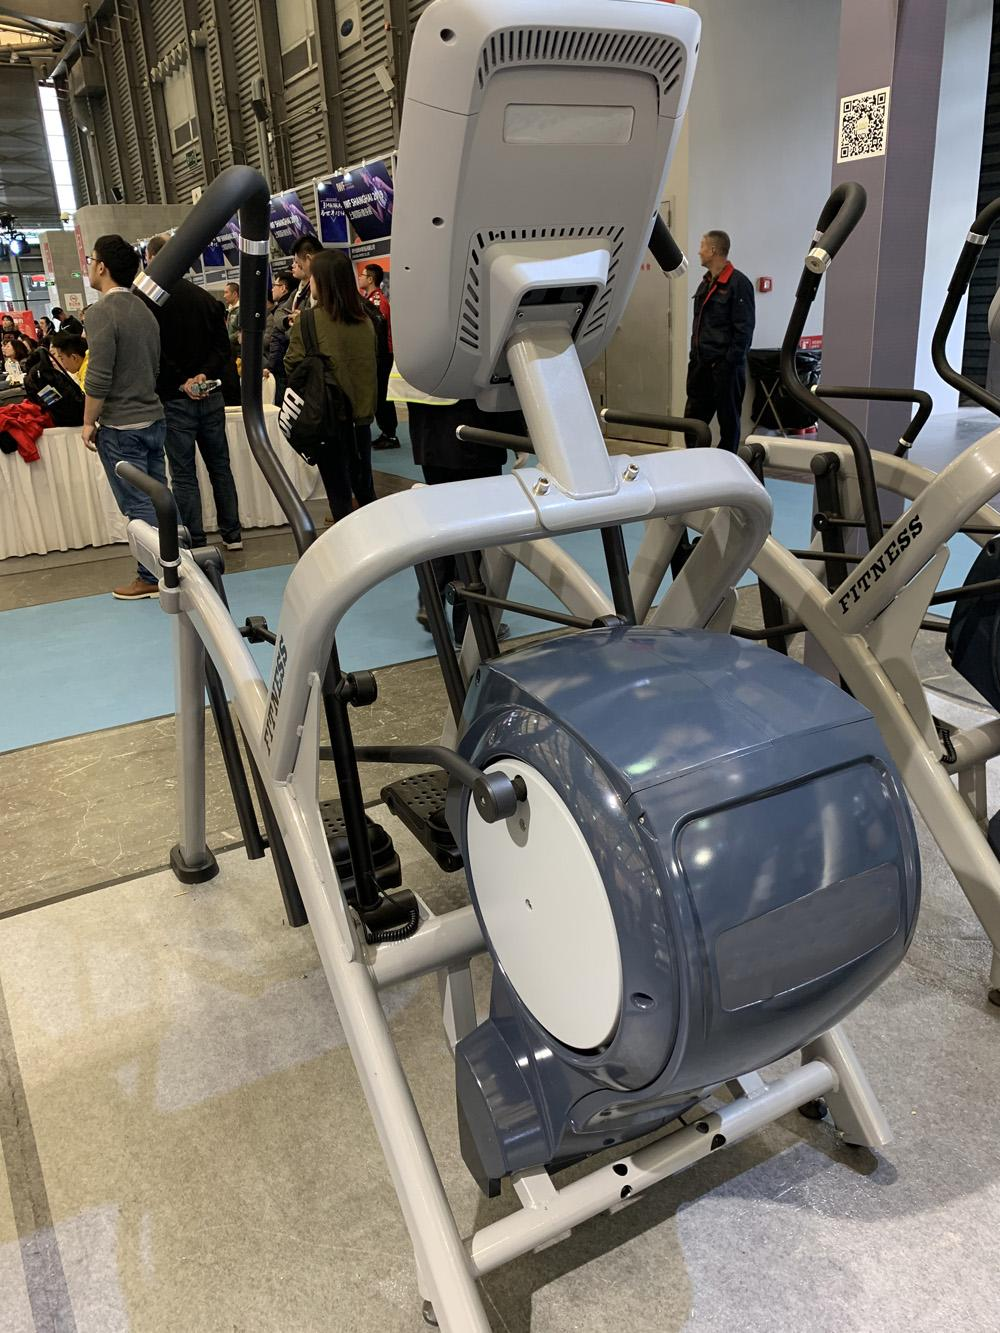 2019 Latest Cardio Machine Cybex Arc Trainer (K-906A)  2